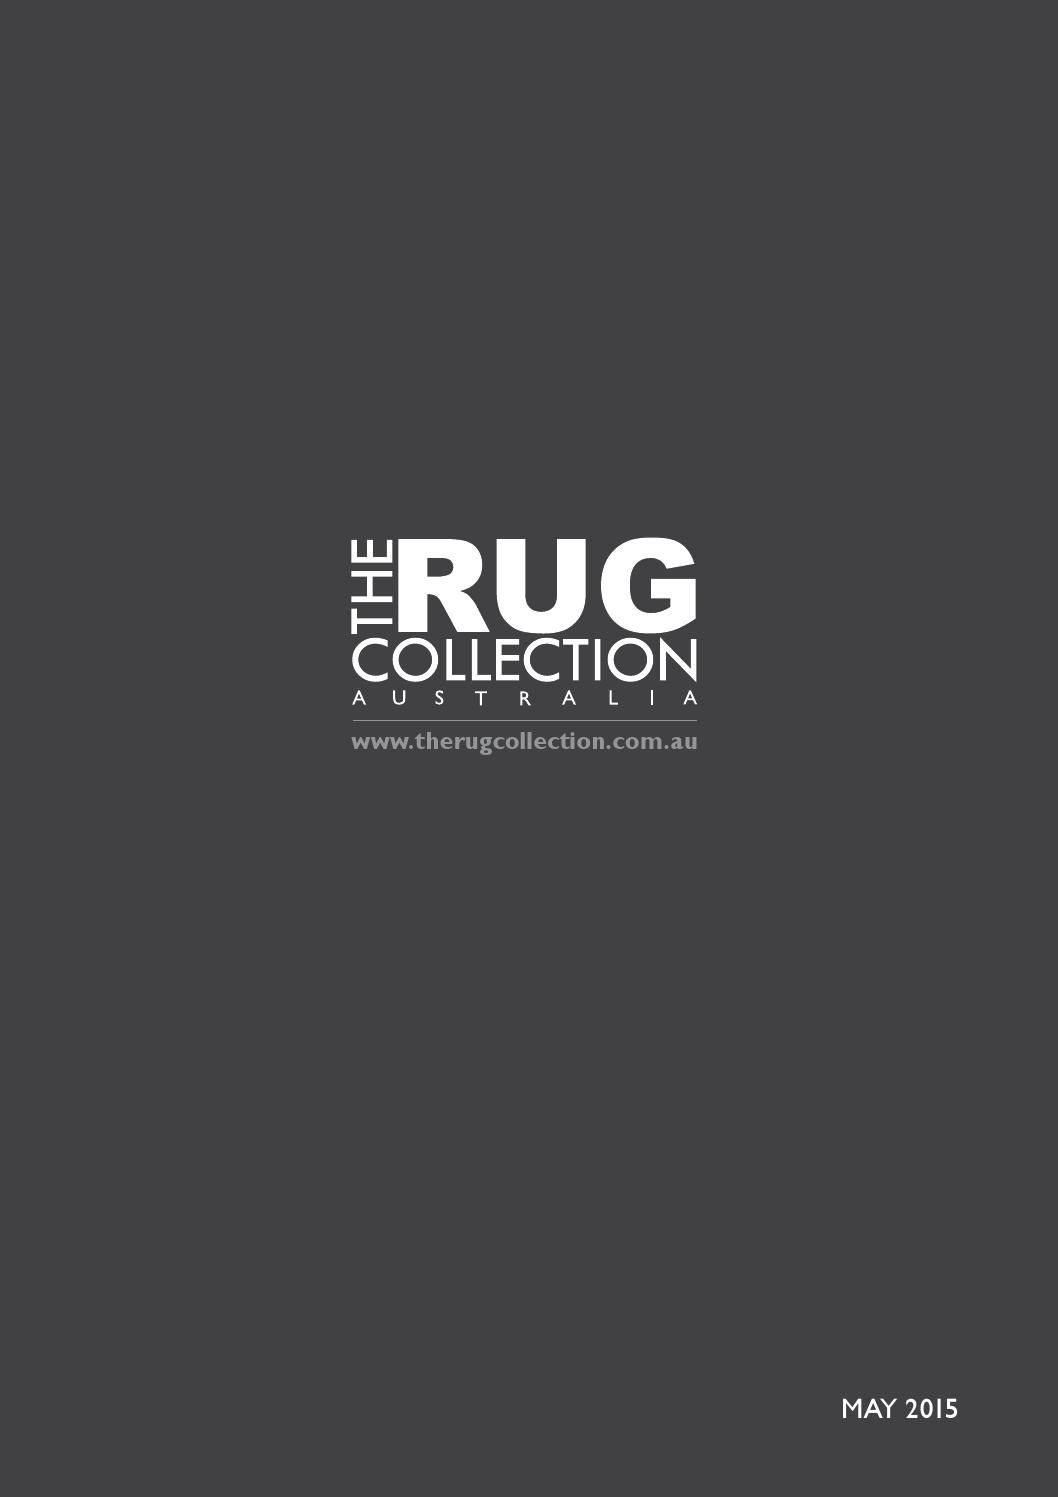 The Rug Collection Brings Together A Stunning Range Of Designer High Quality Rugs That Enhance